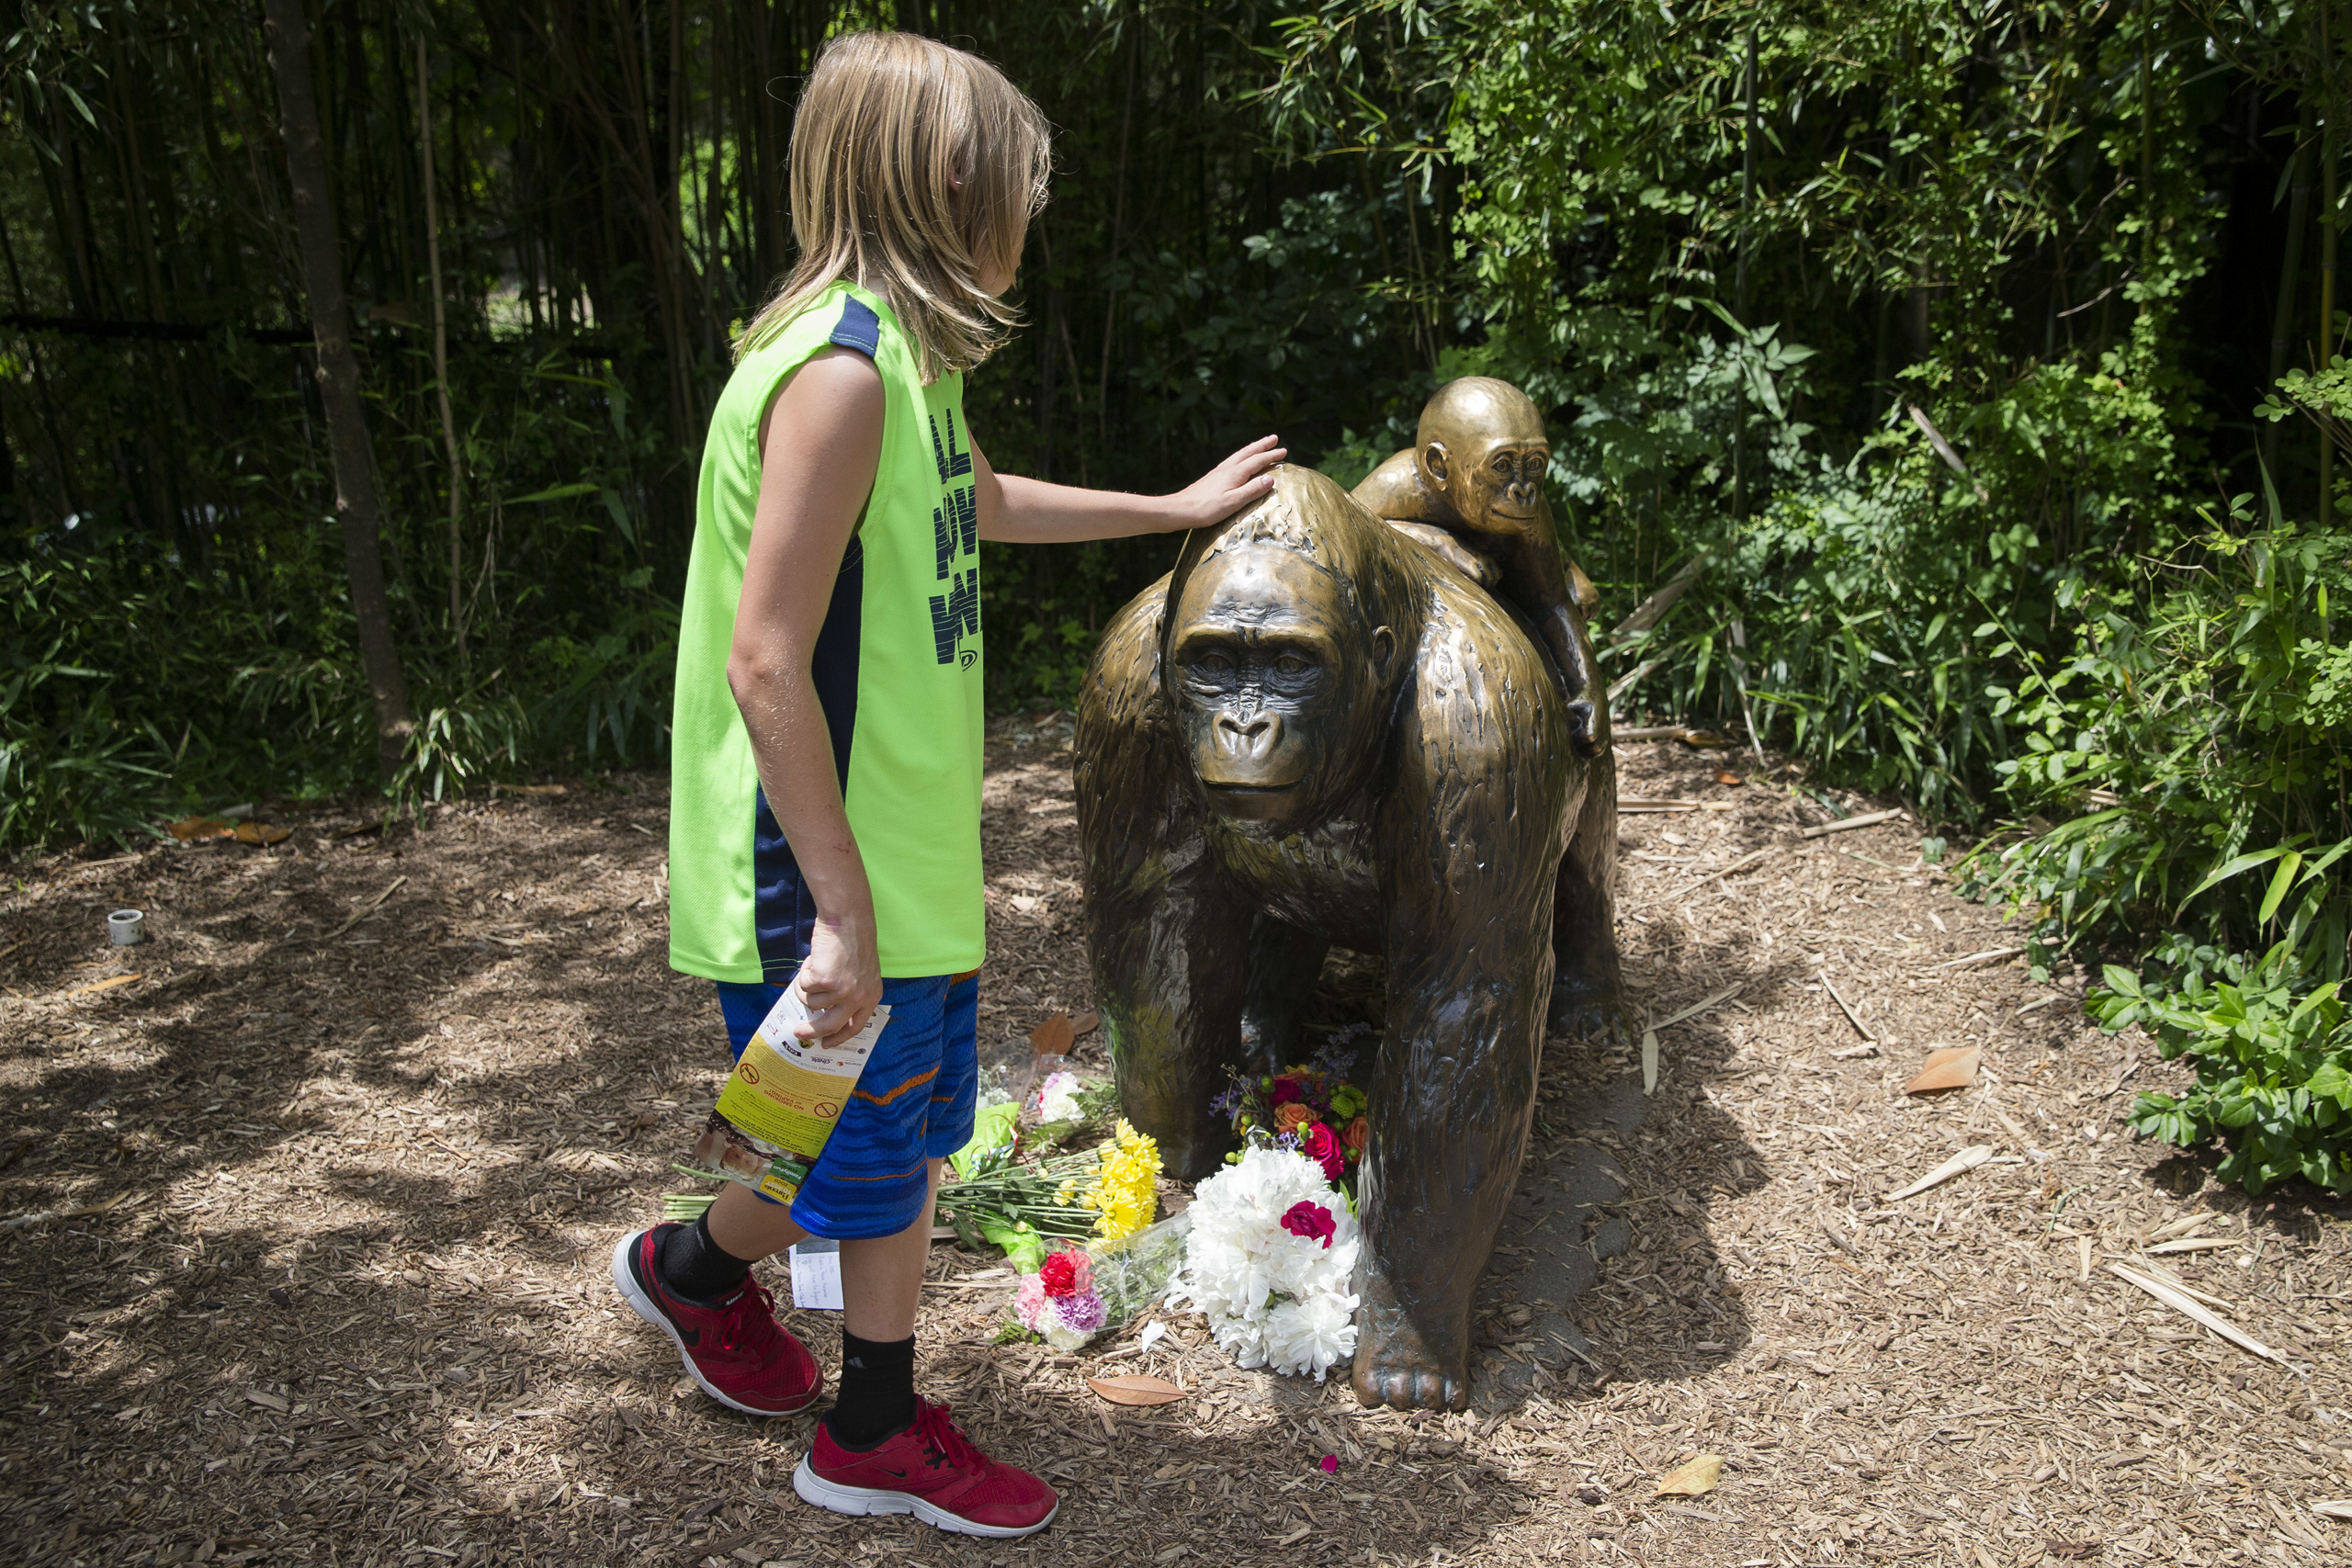 A child touches the head of a gorilla statue where flowers have been placed outside the Gorilla World exhibit at the Cincinnati Zoo & Botanical Garden in Cincinnati on May 29, 2016.